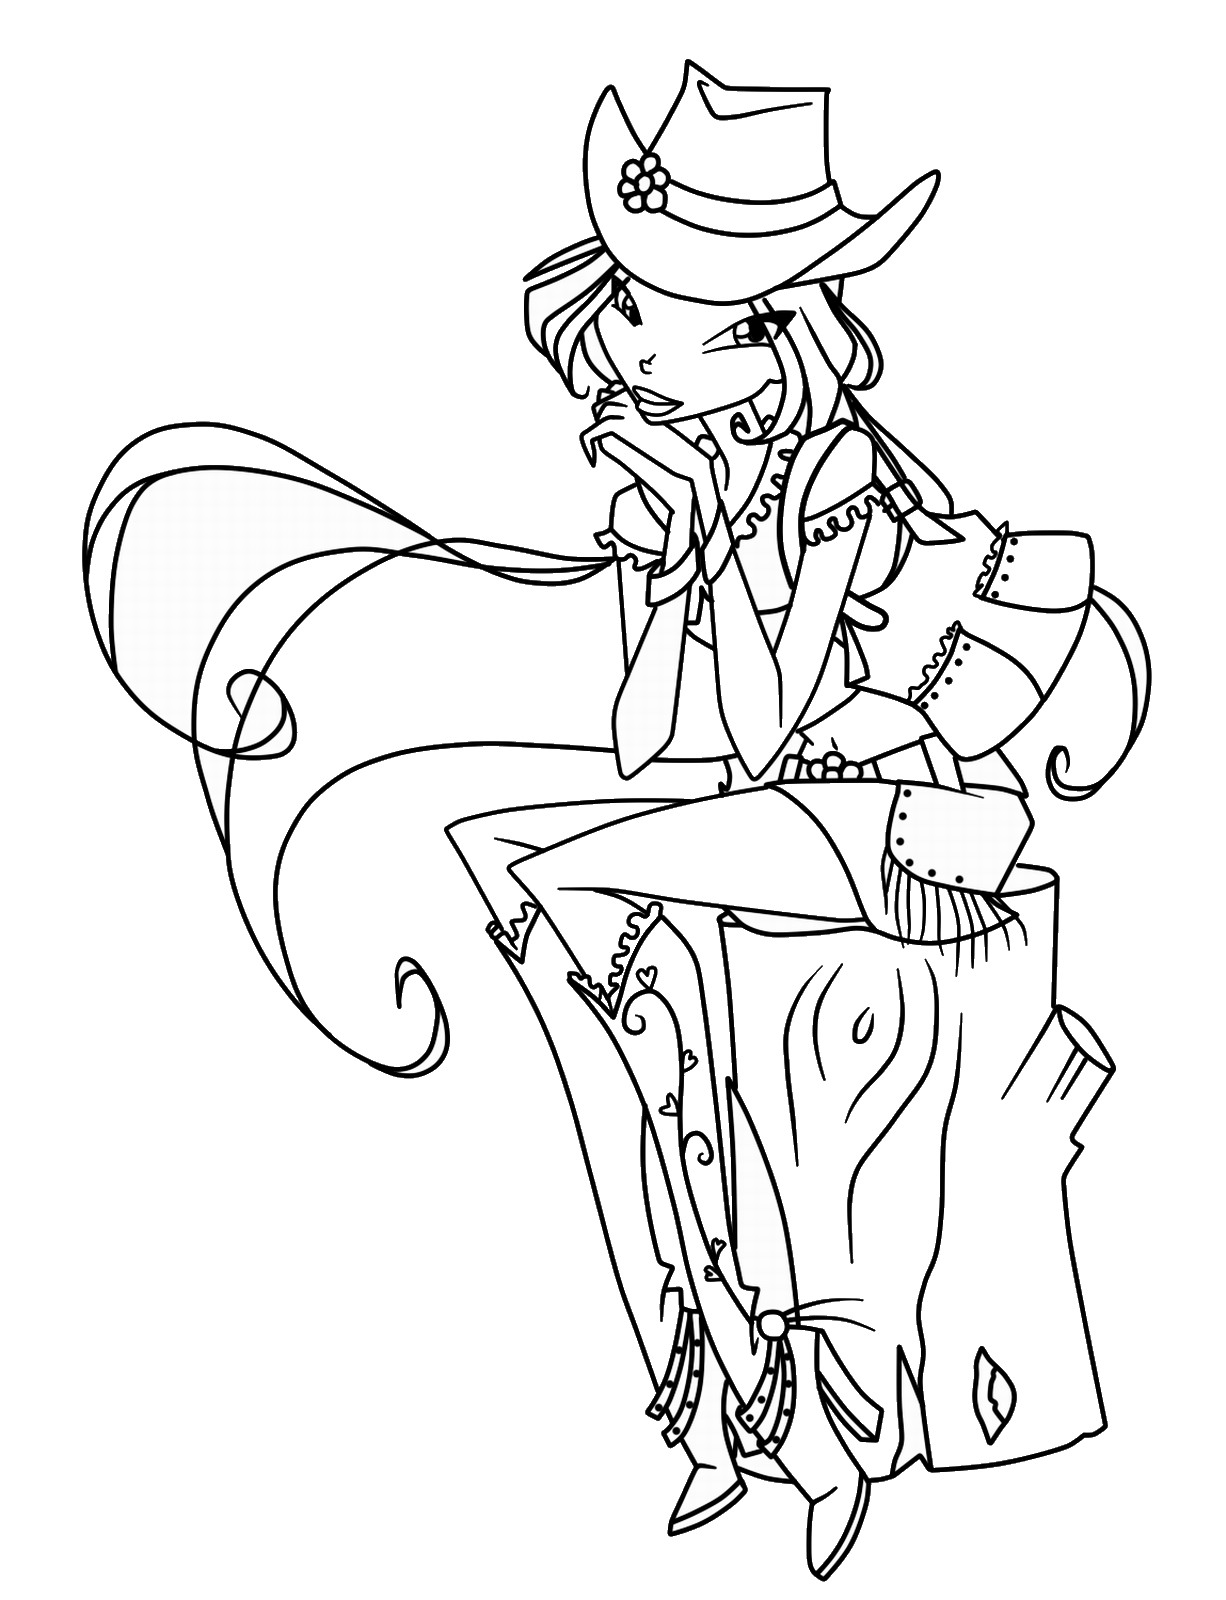 winx coloring pages online winx club stella 2 coloring page free printable coloring winx online coloring pages